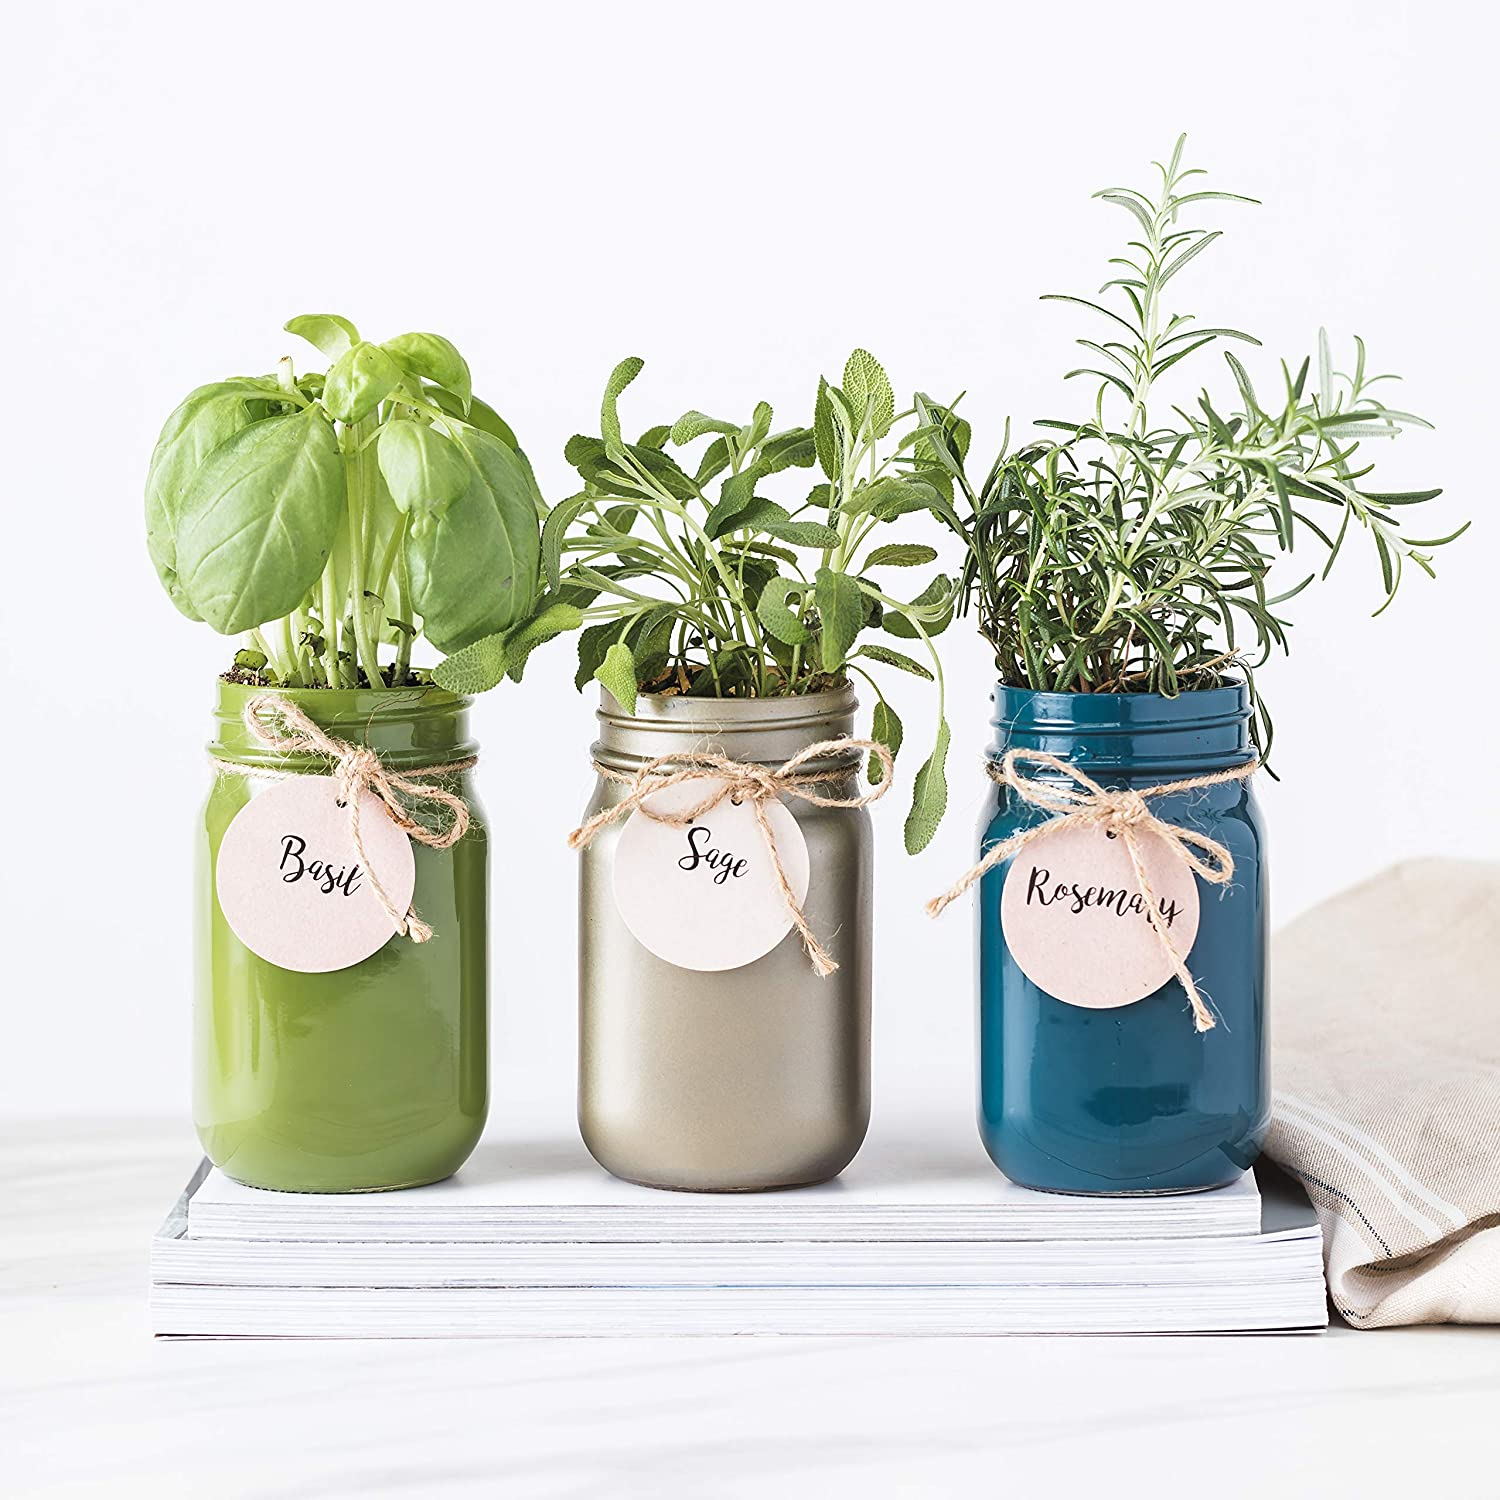 Thoughtfully Gifts, Mason Jar Garden, Grow Your Own Herbs Gift Set, Contains Rosemary, Basil and Sage Seeds with 6 Soil Pods